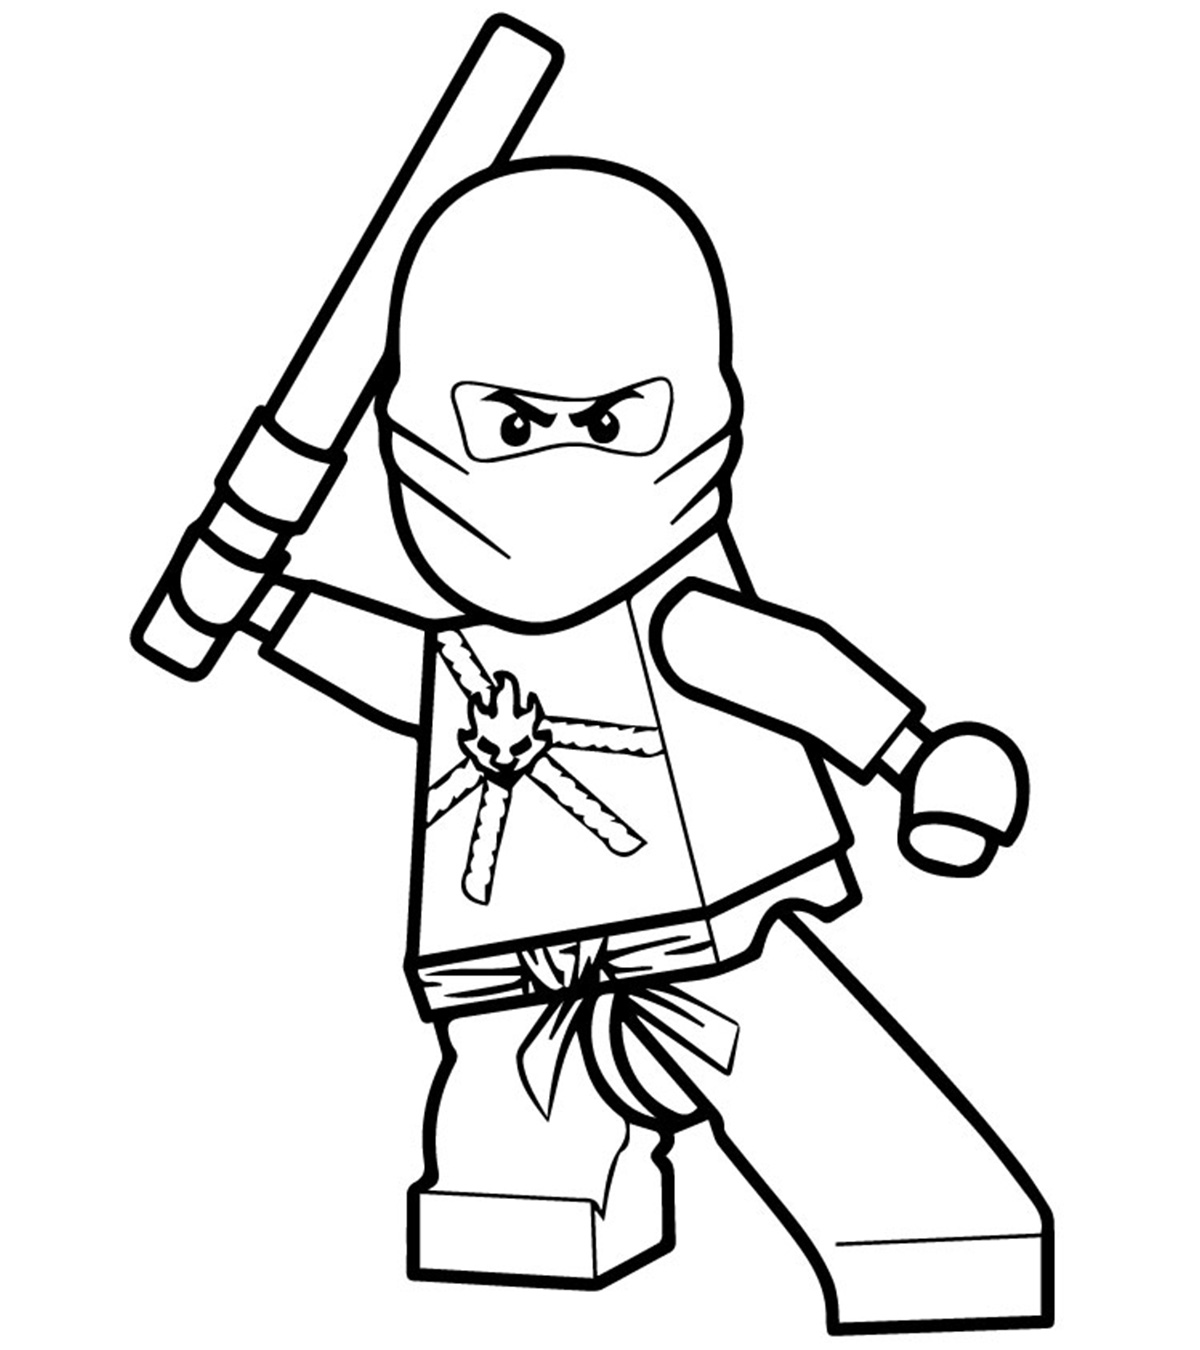 Top 40 Ninjago Coloring Pages Your Toddler Will Love 1